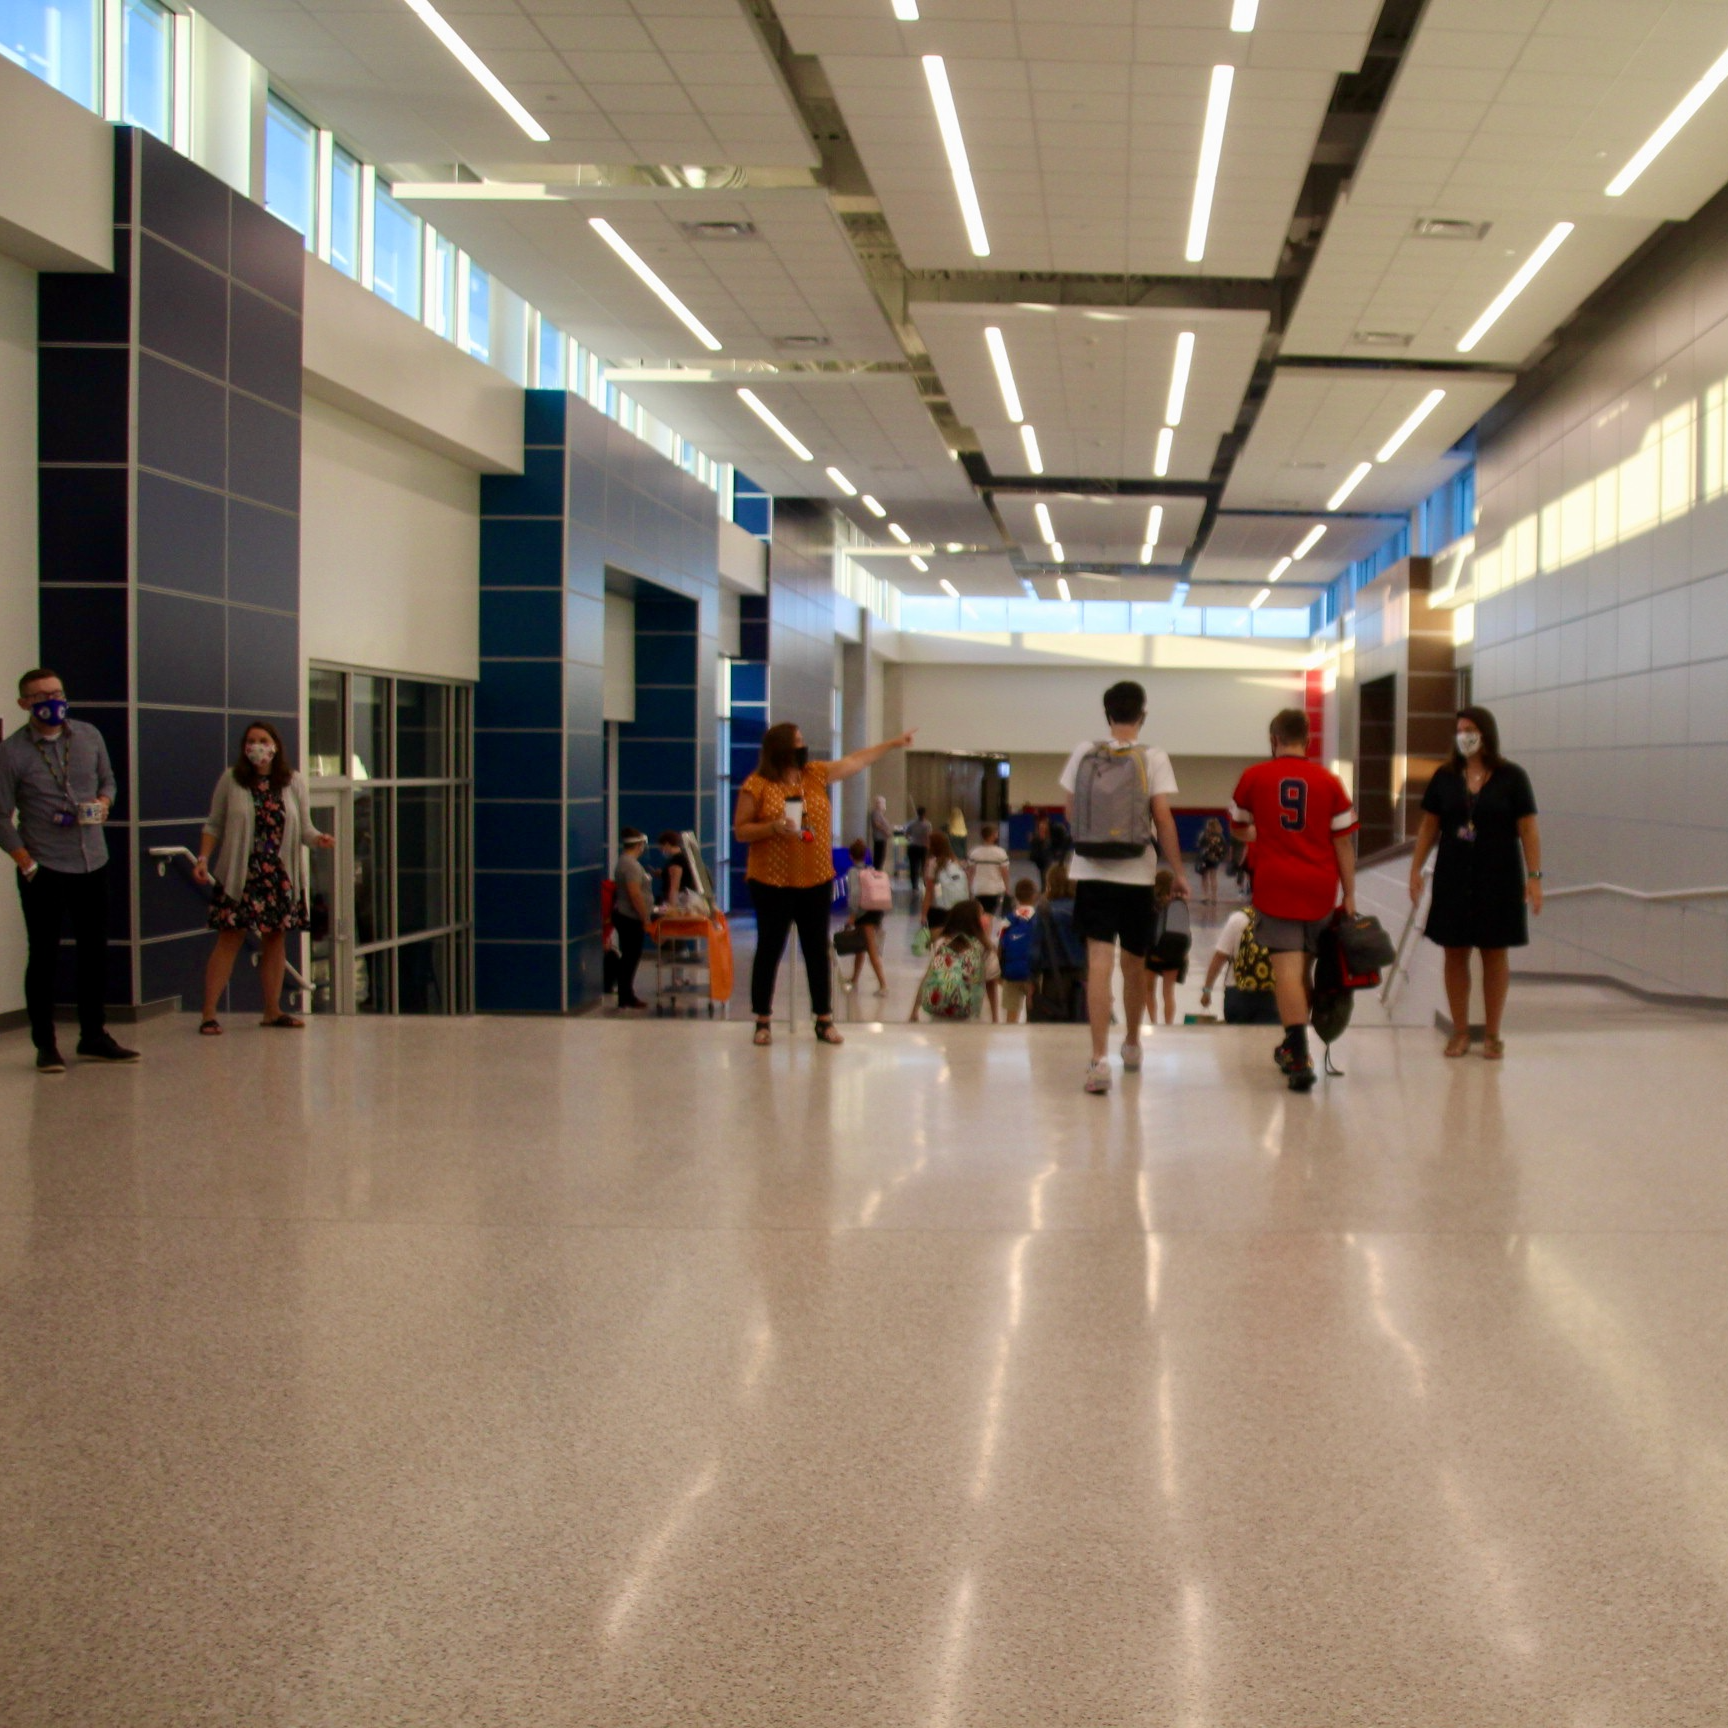 The #FDOS was even more exciting since PCMS students returned to renovations that added many new features.